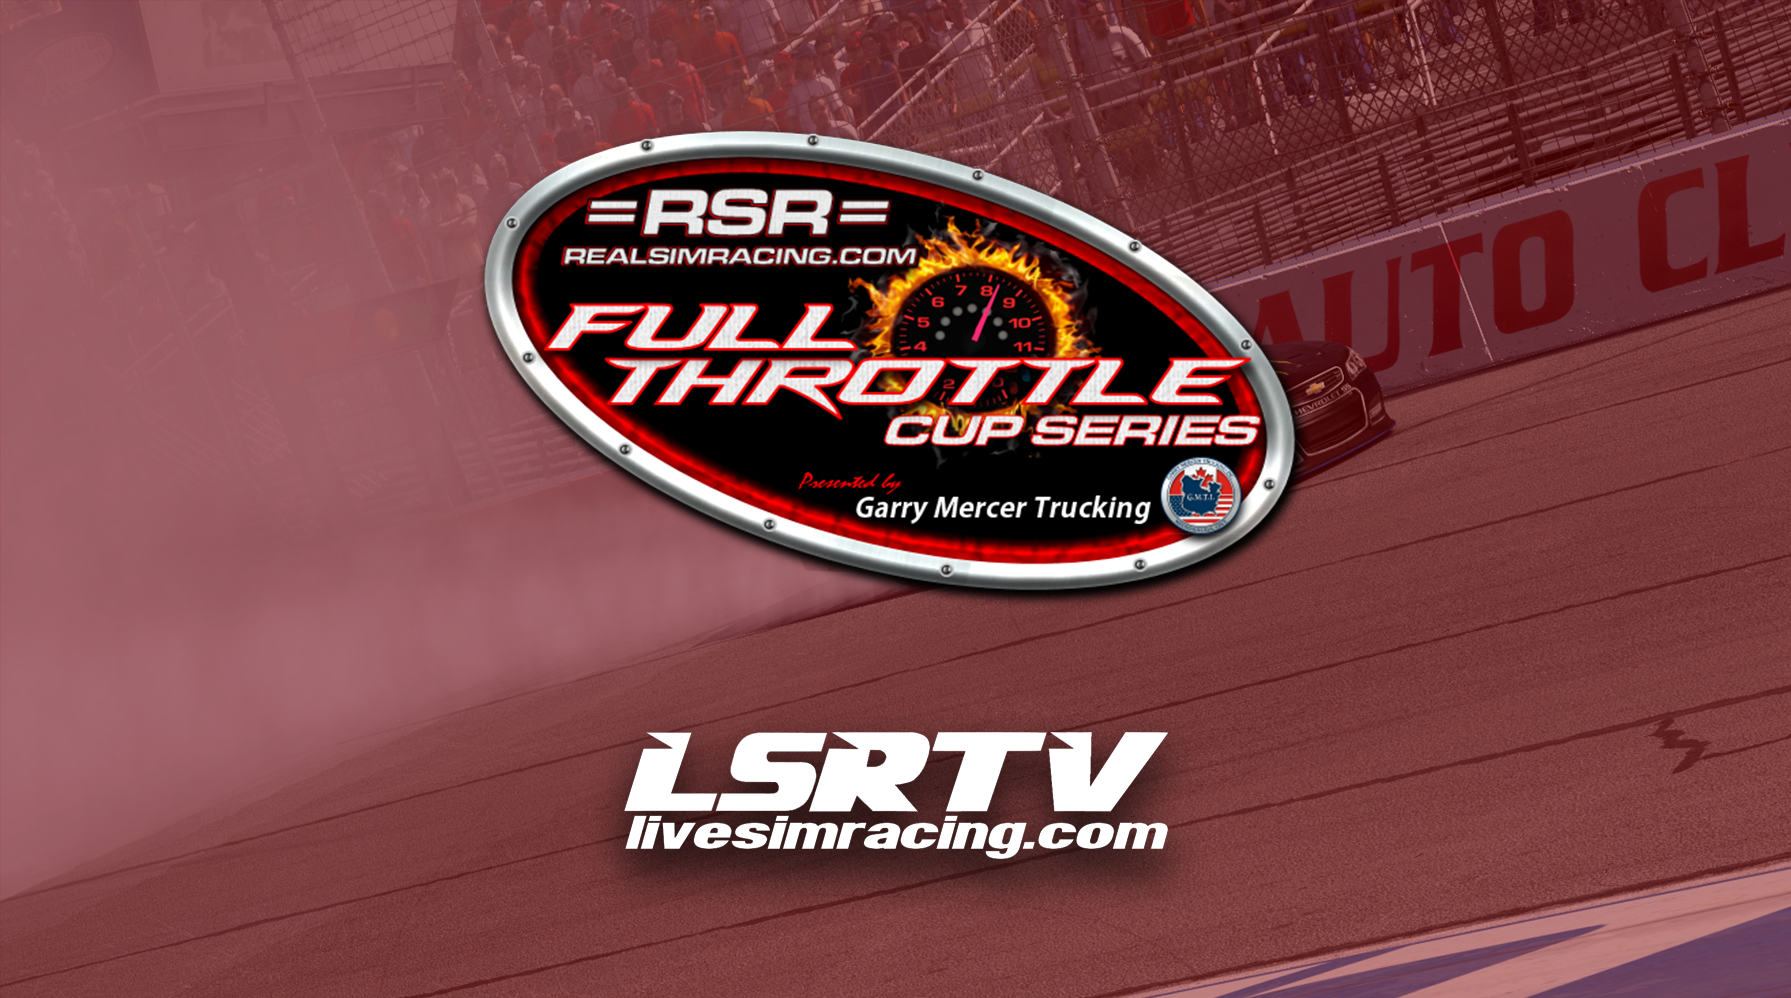 RSR Full Throttle Cup Series